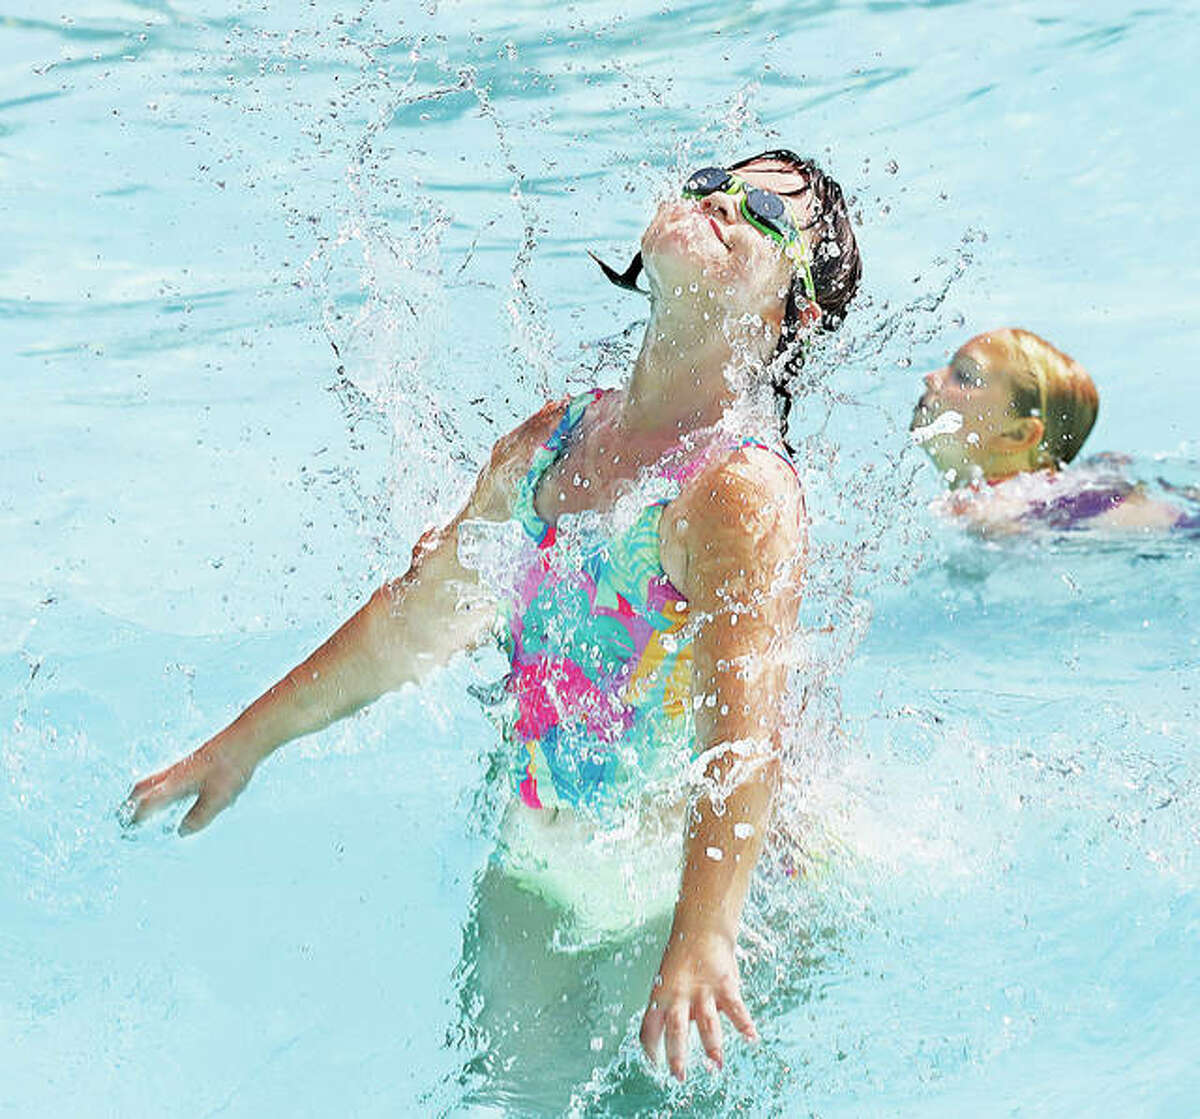 A young girl leaps out of the water Tuesday like a dolphin in the Breaker Beach wave pool at Grafton's Raging Rivers Water Park on the Great River Road. A large crowd was already at the water park shortly after its opening Tuesday as people sought relief from the heat and humidity. The park opens daily at 10:30 a.m. For more details call 618-786-2345. For more photos, visit www.thetelegraph.com. - John Badman|The Telegraph